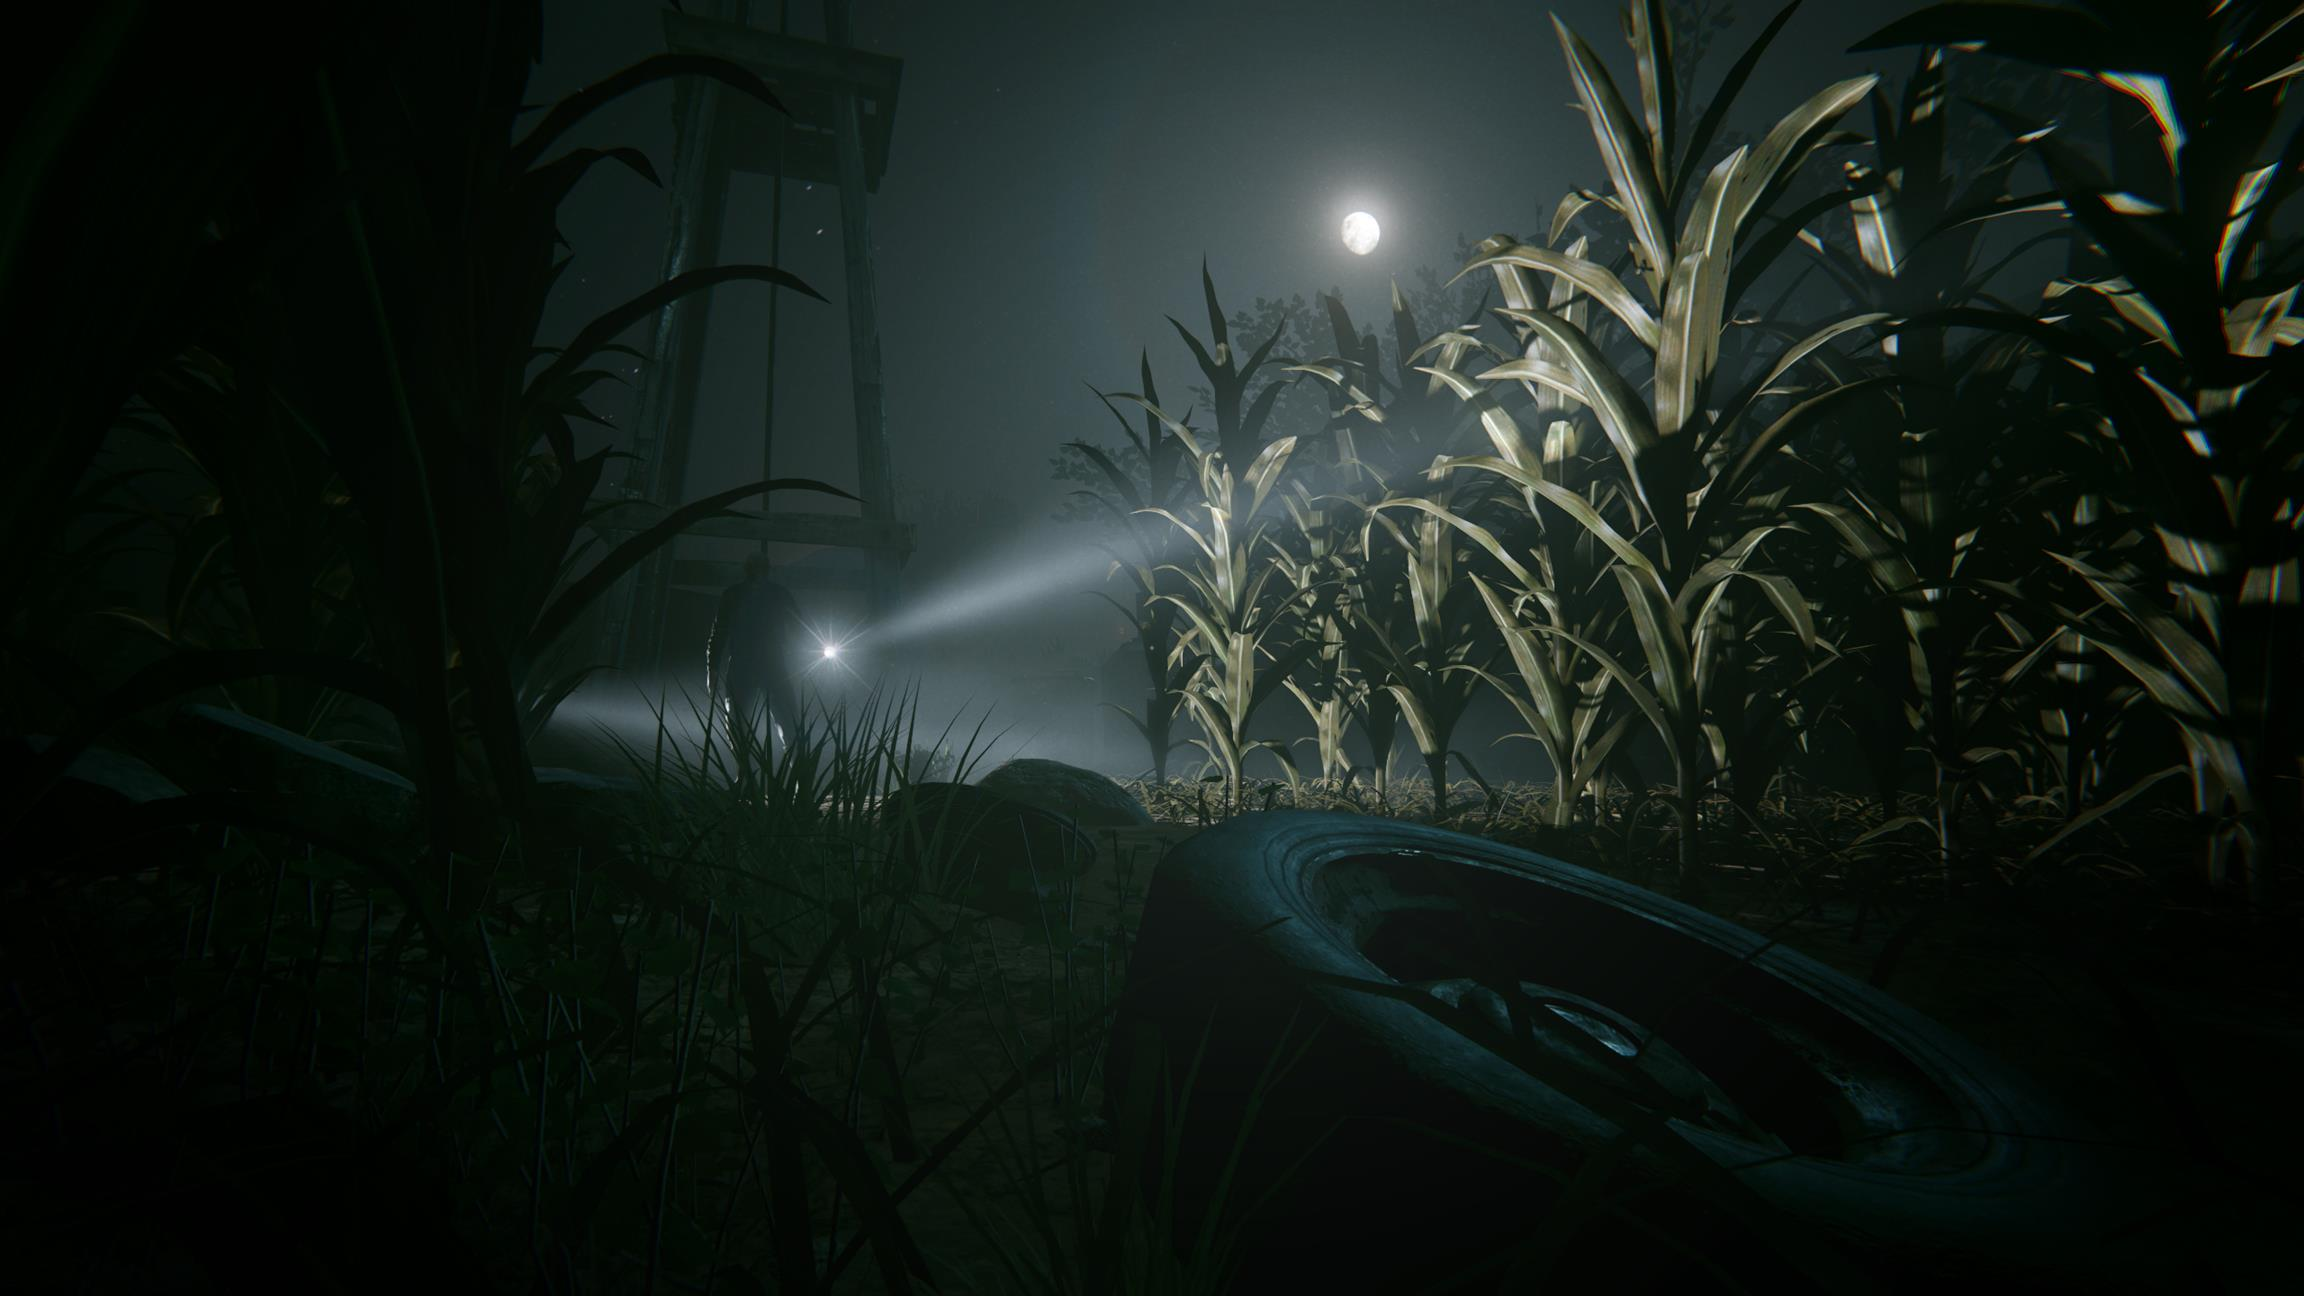 Buy Outlast 2 from the Humble Store, get the first game free